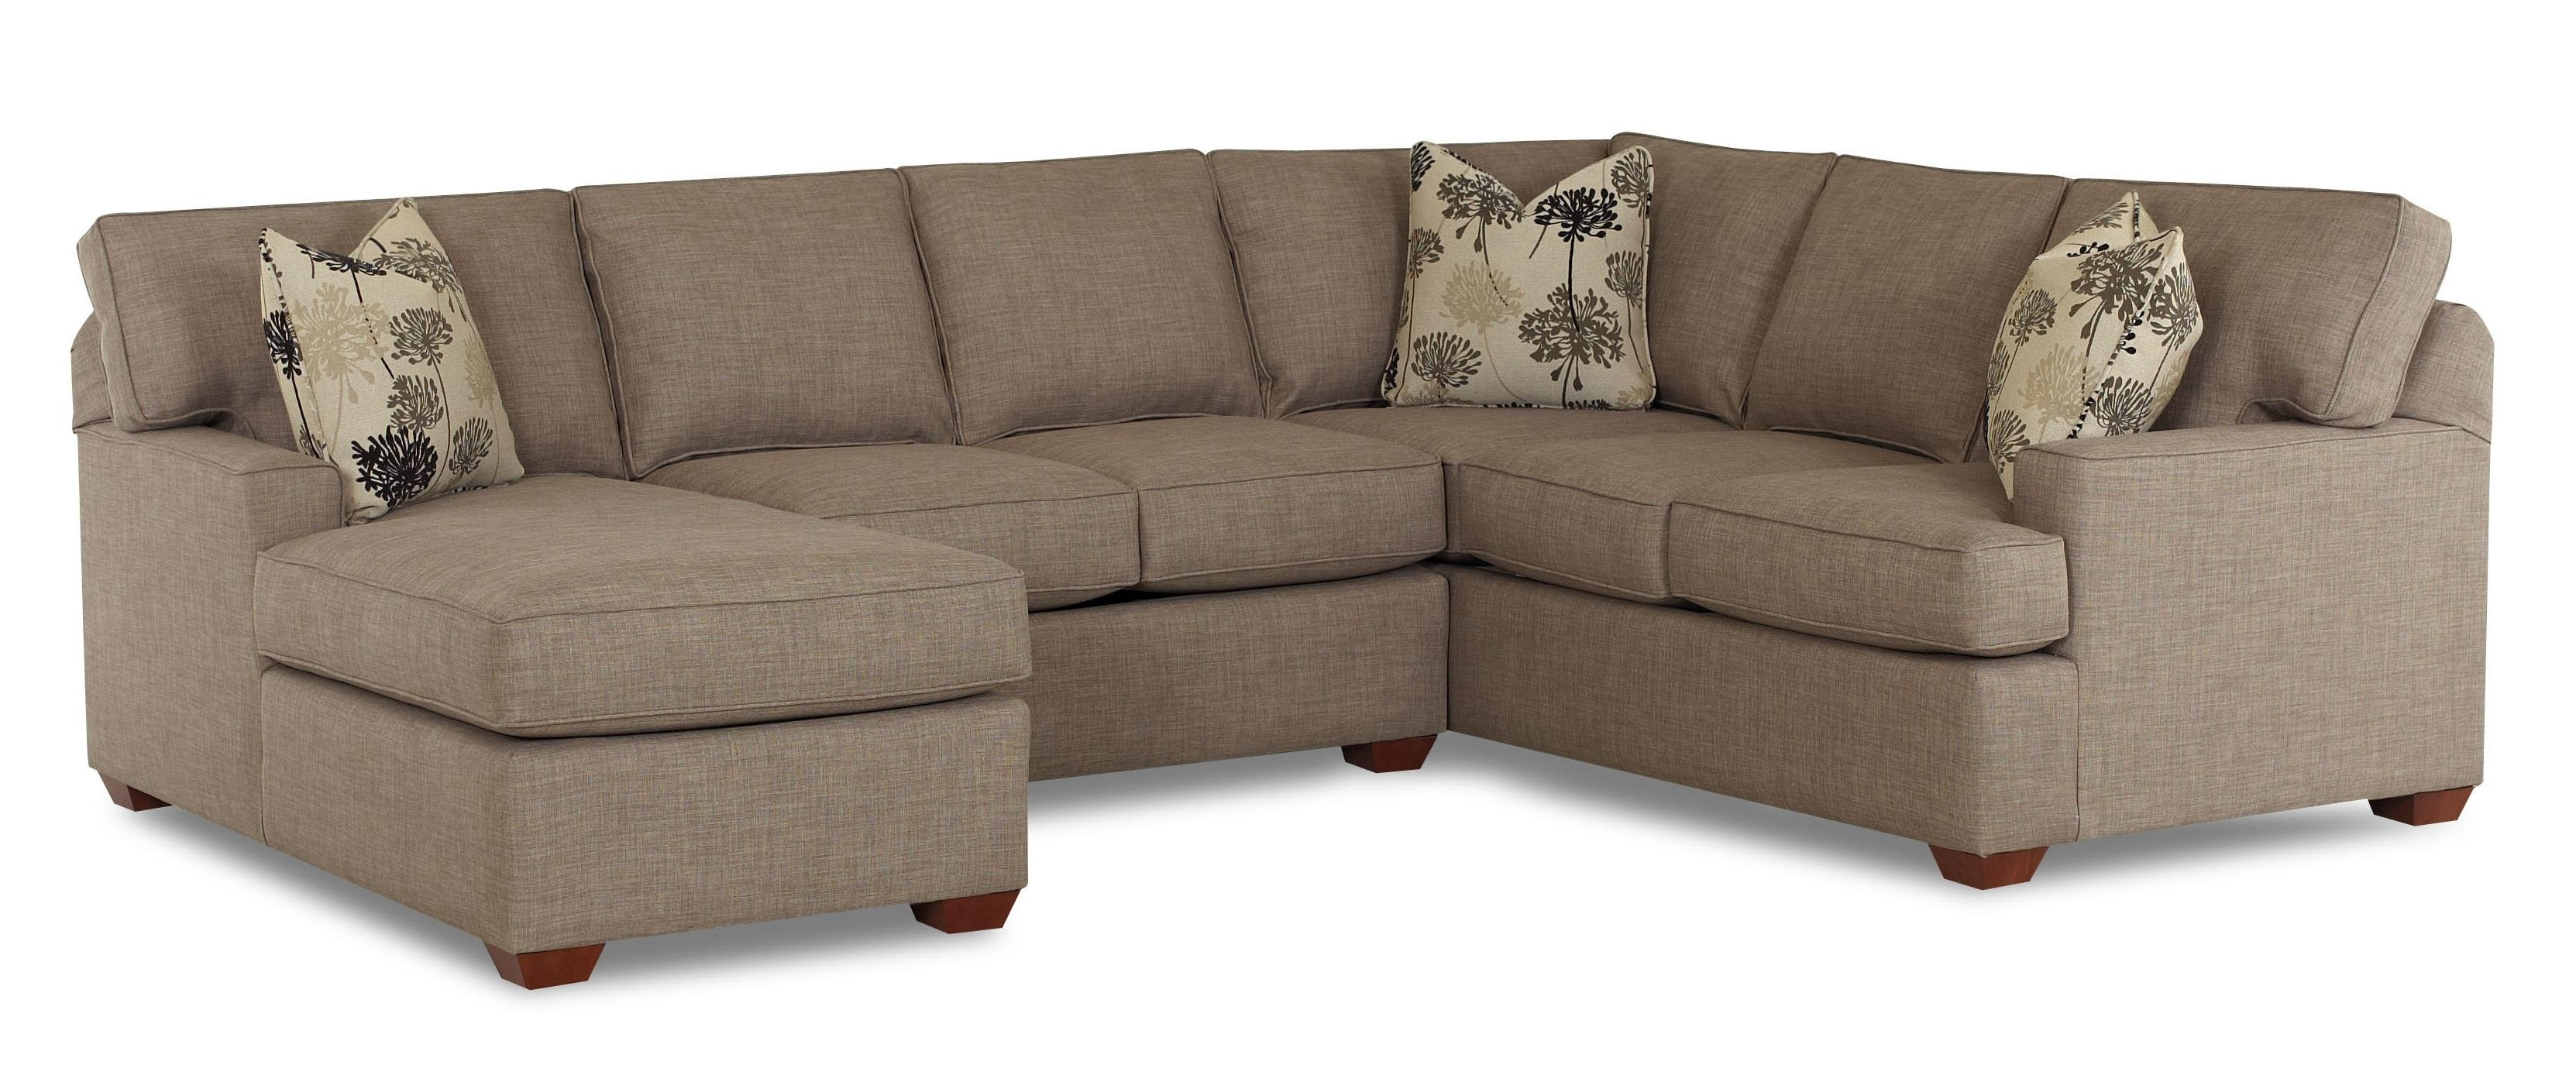 22 3 Piece Sectional Sofa | Euglena.biz Regarding Tatum Dark Grey 2 Piece Sectionals With Laf Chaise (Gallery 27 of 30)